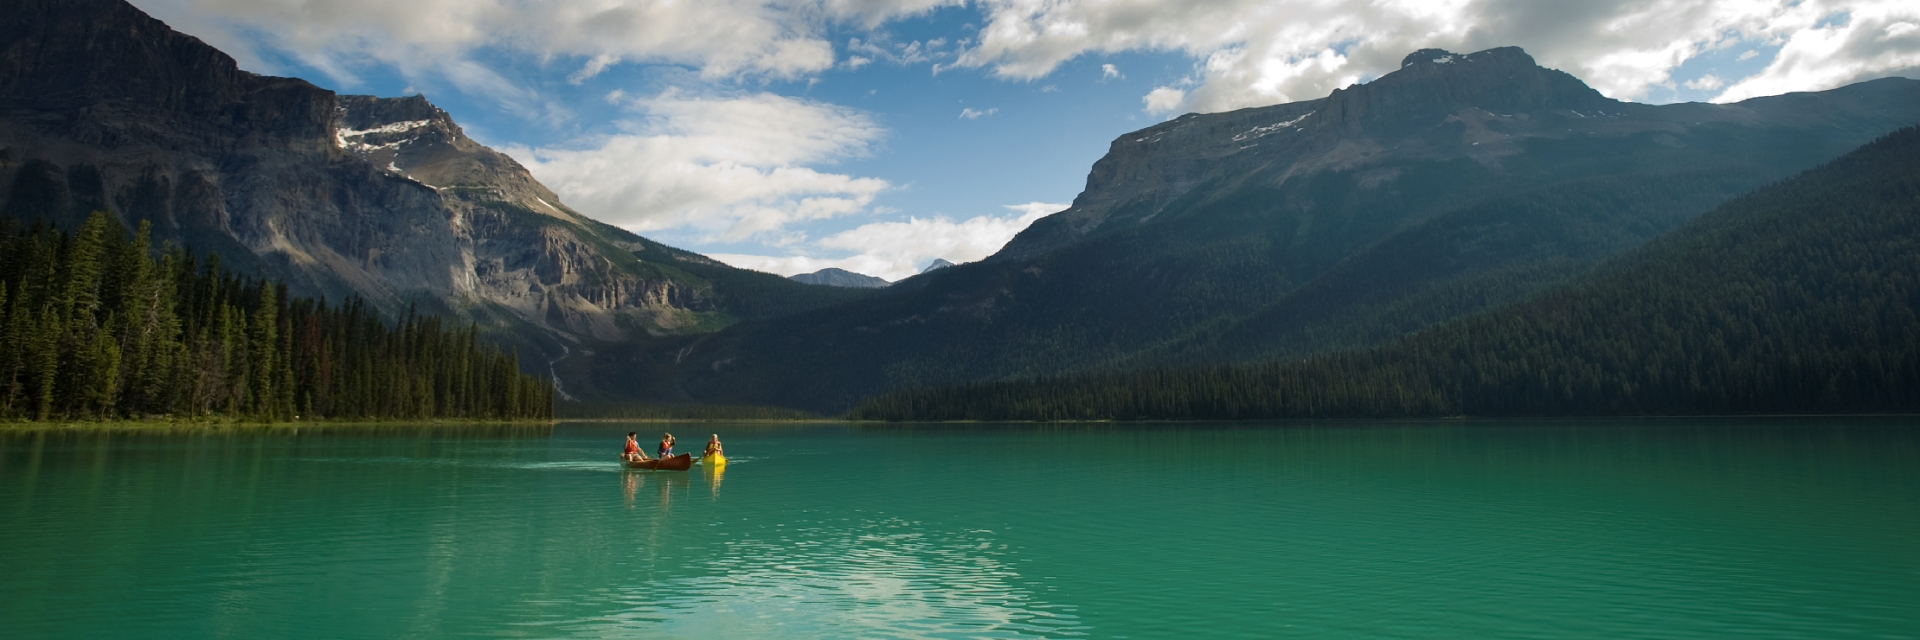 Two couples canoeing on Emerald Lake with views of the mountains in Yoho National Park near Field.